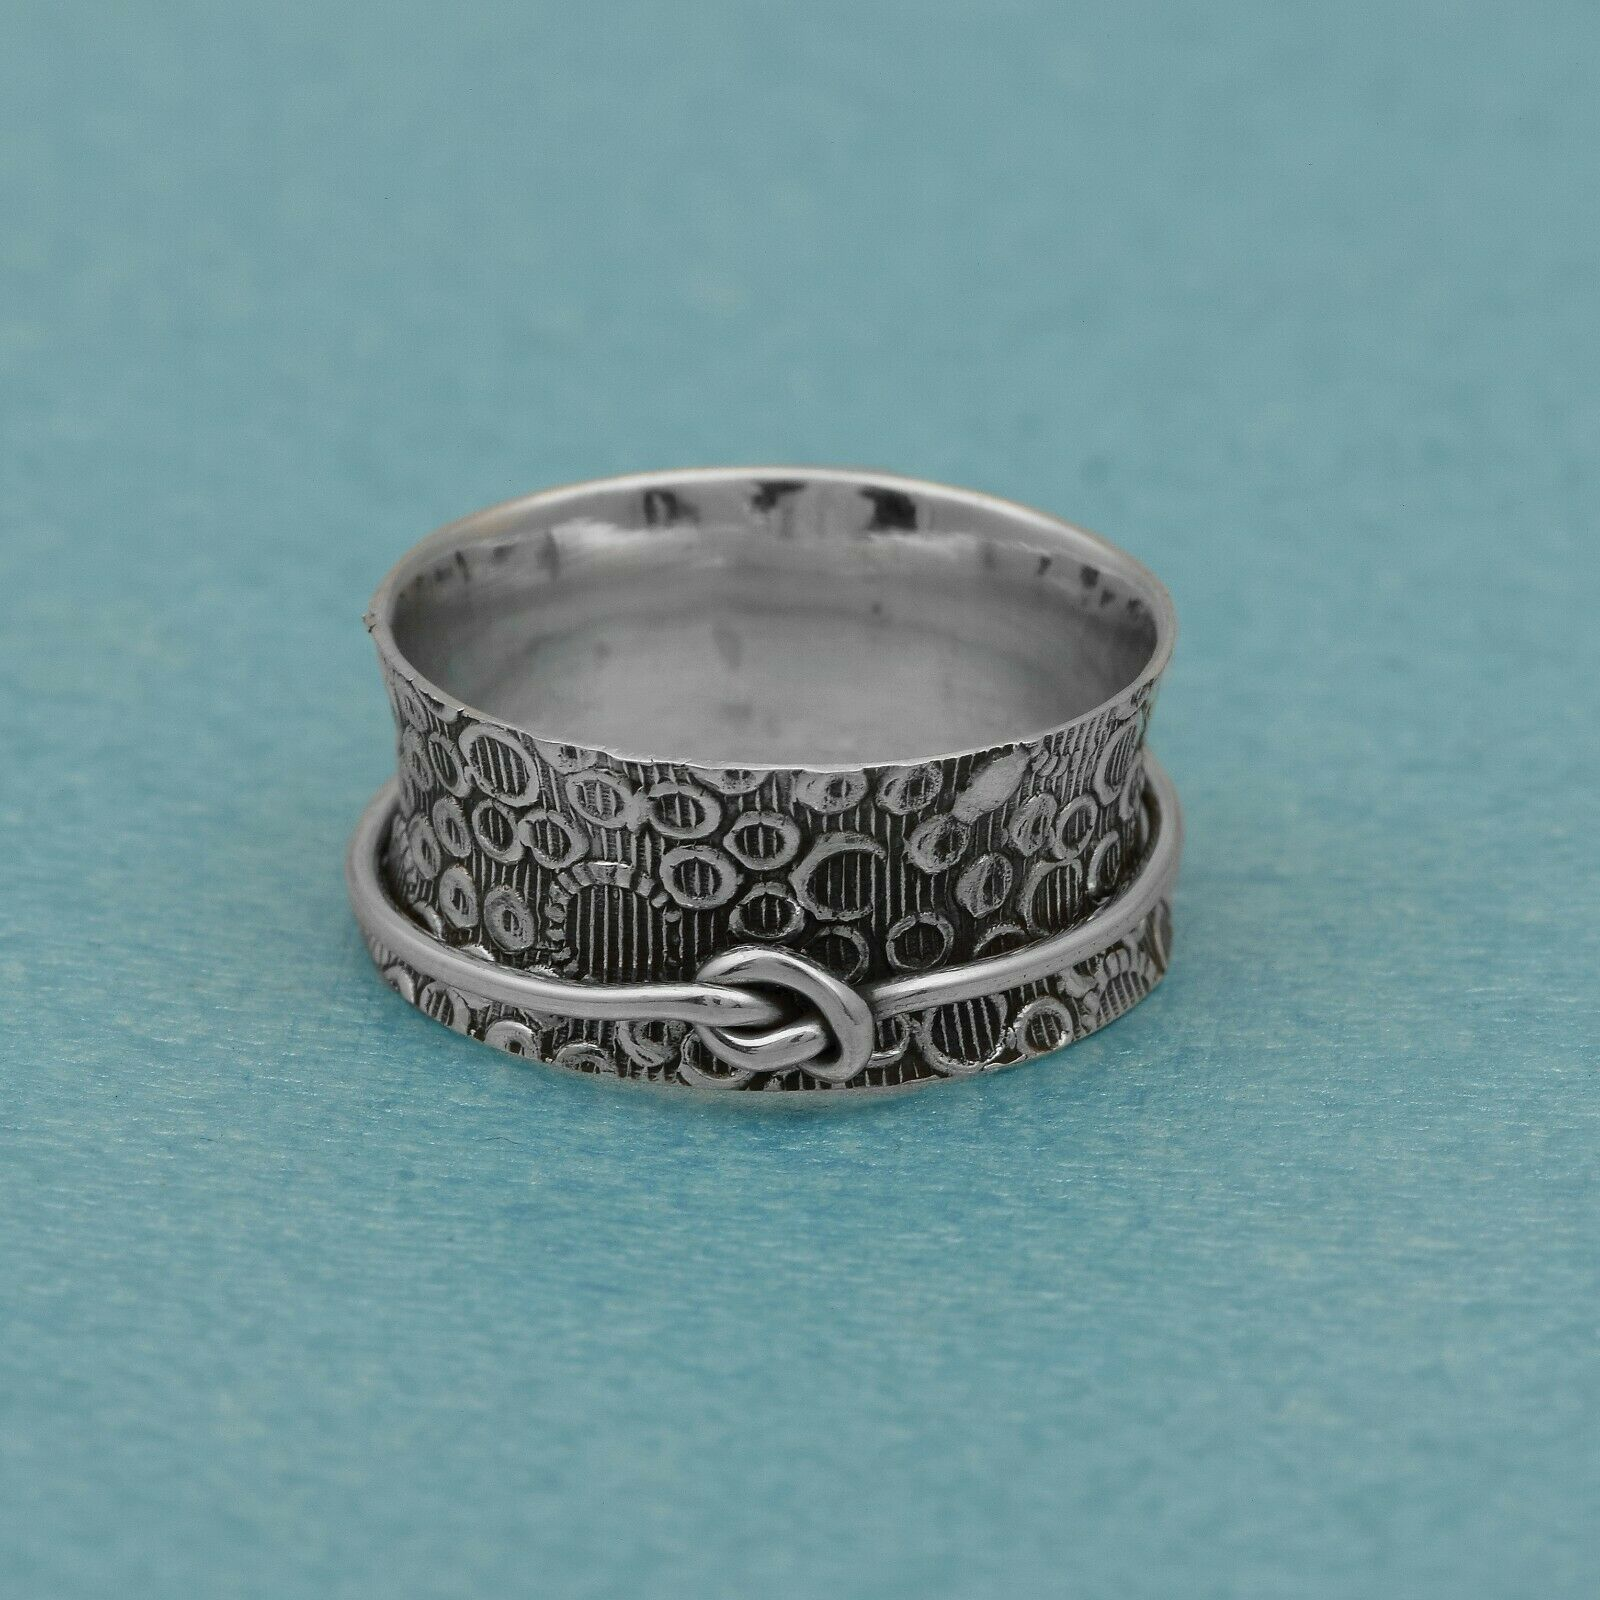 Spinner Ring! 925 Sterling Silver Love me Knot Band Meditation Anxiety Ring